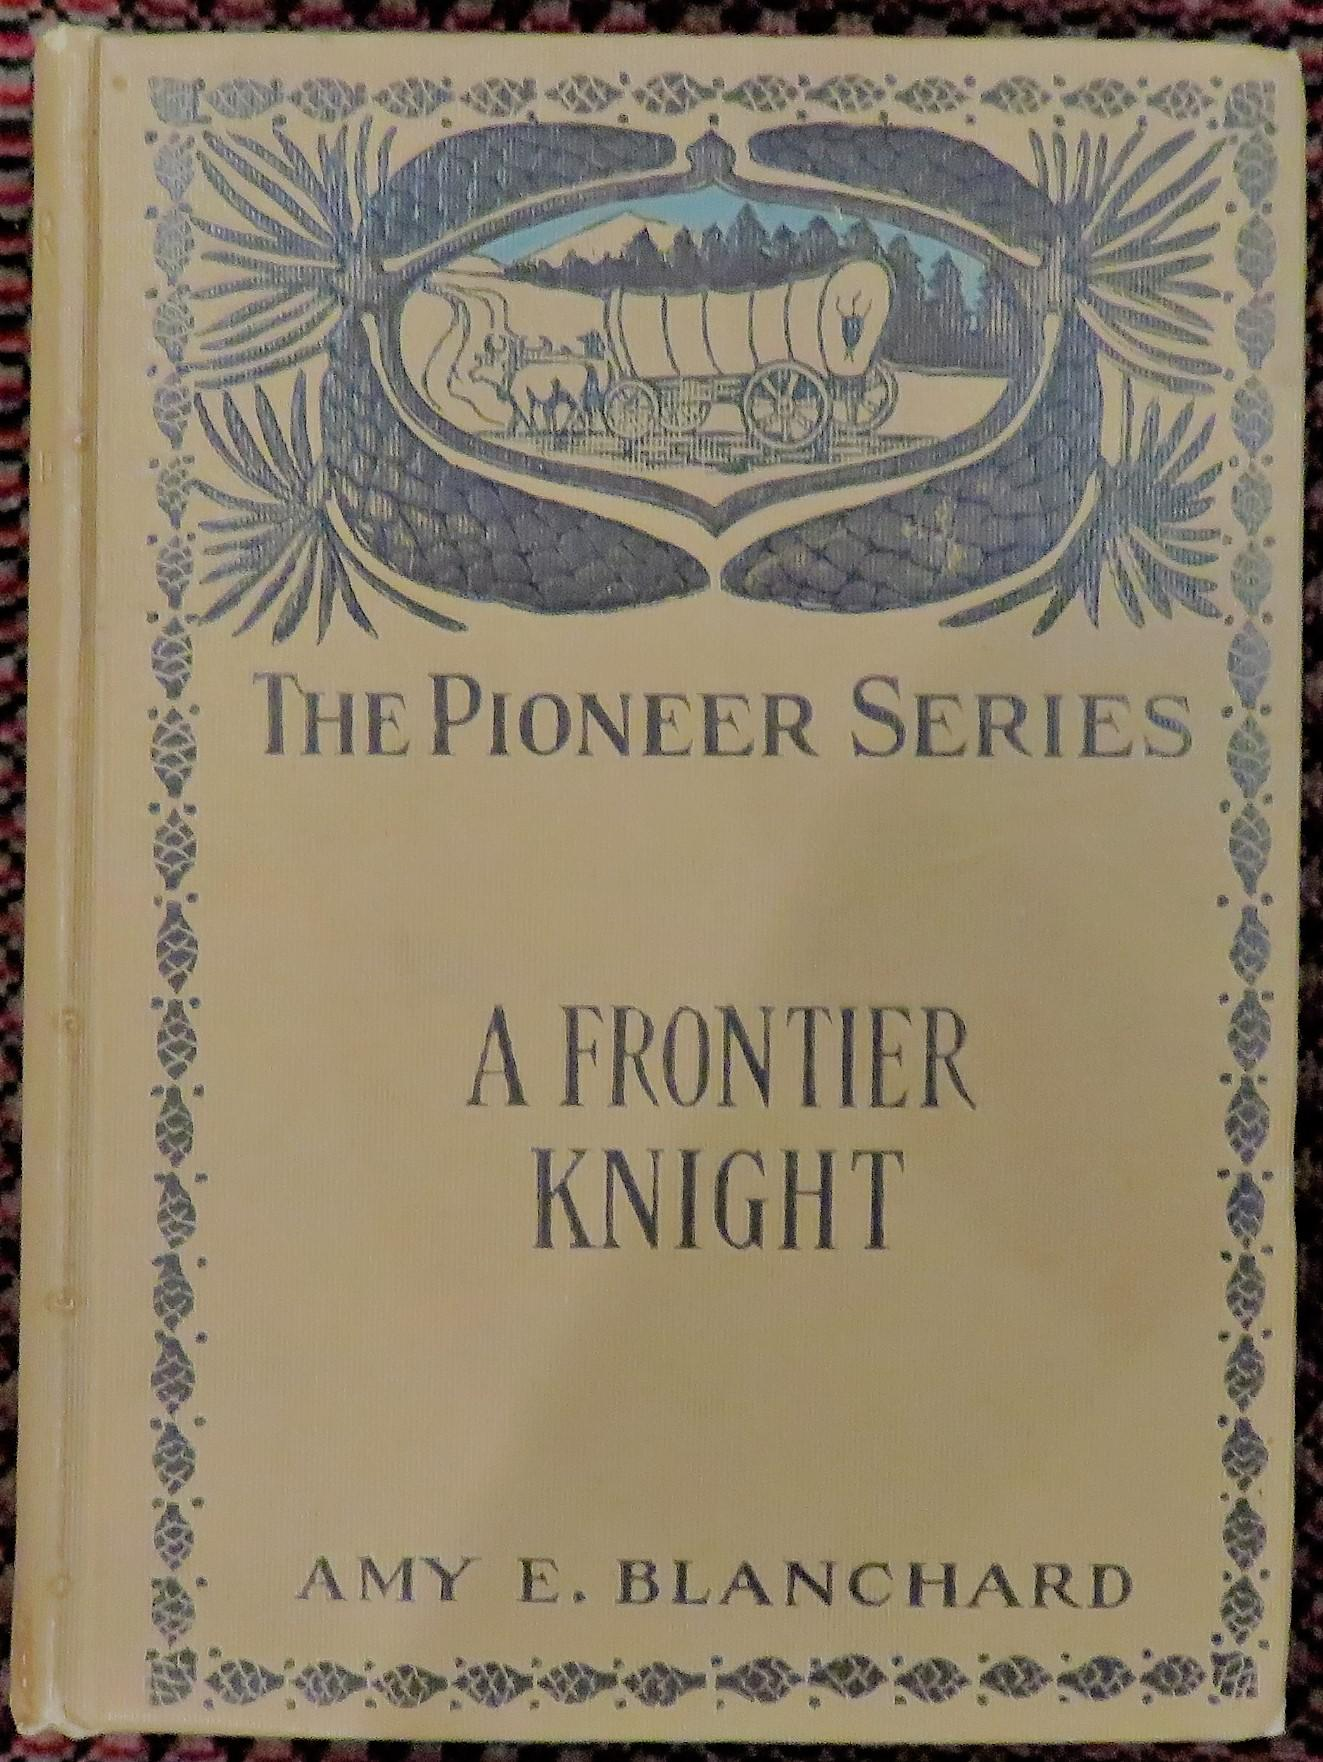 The Pioneer Series: A Frontier Knight